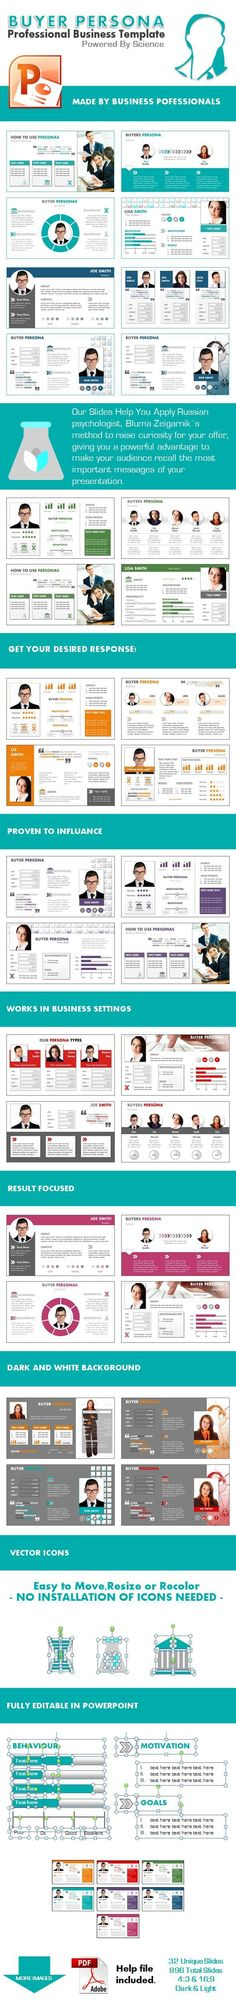 millionaire - premium powerpoint template | design and templates, Presentation templates